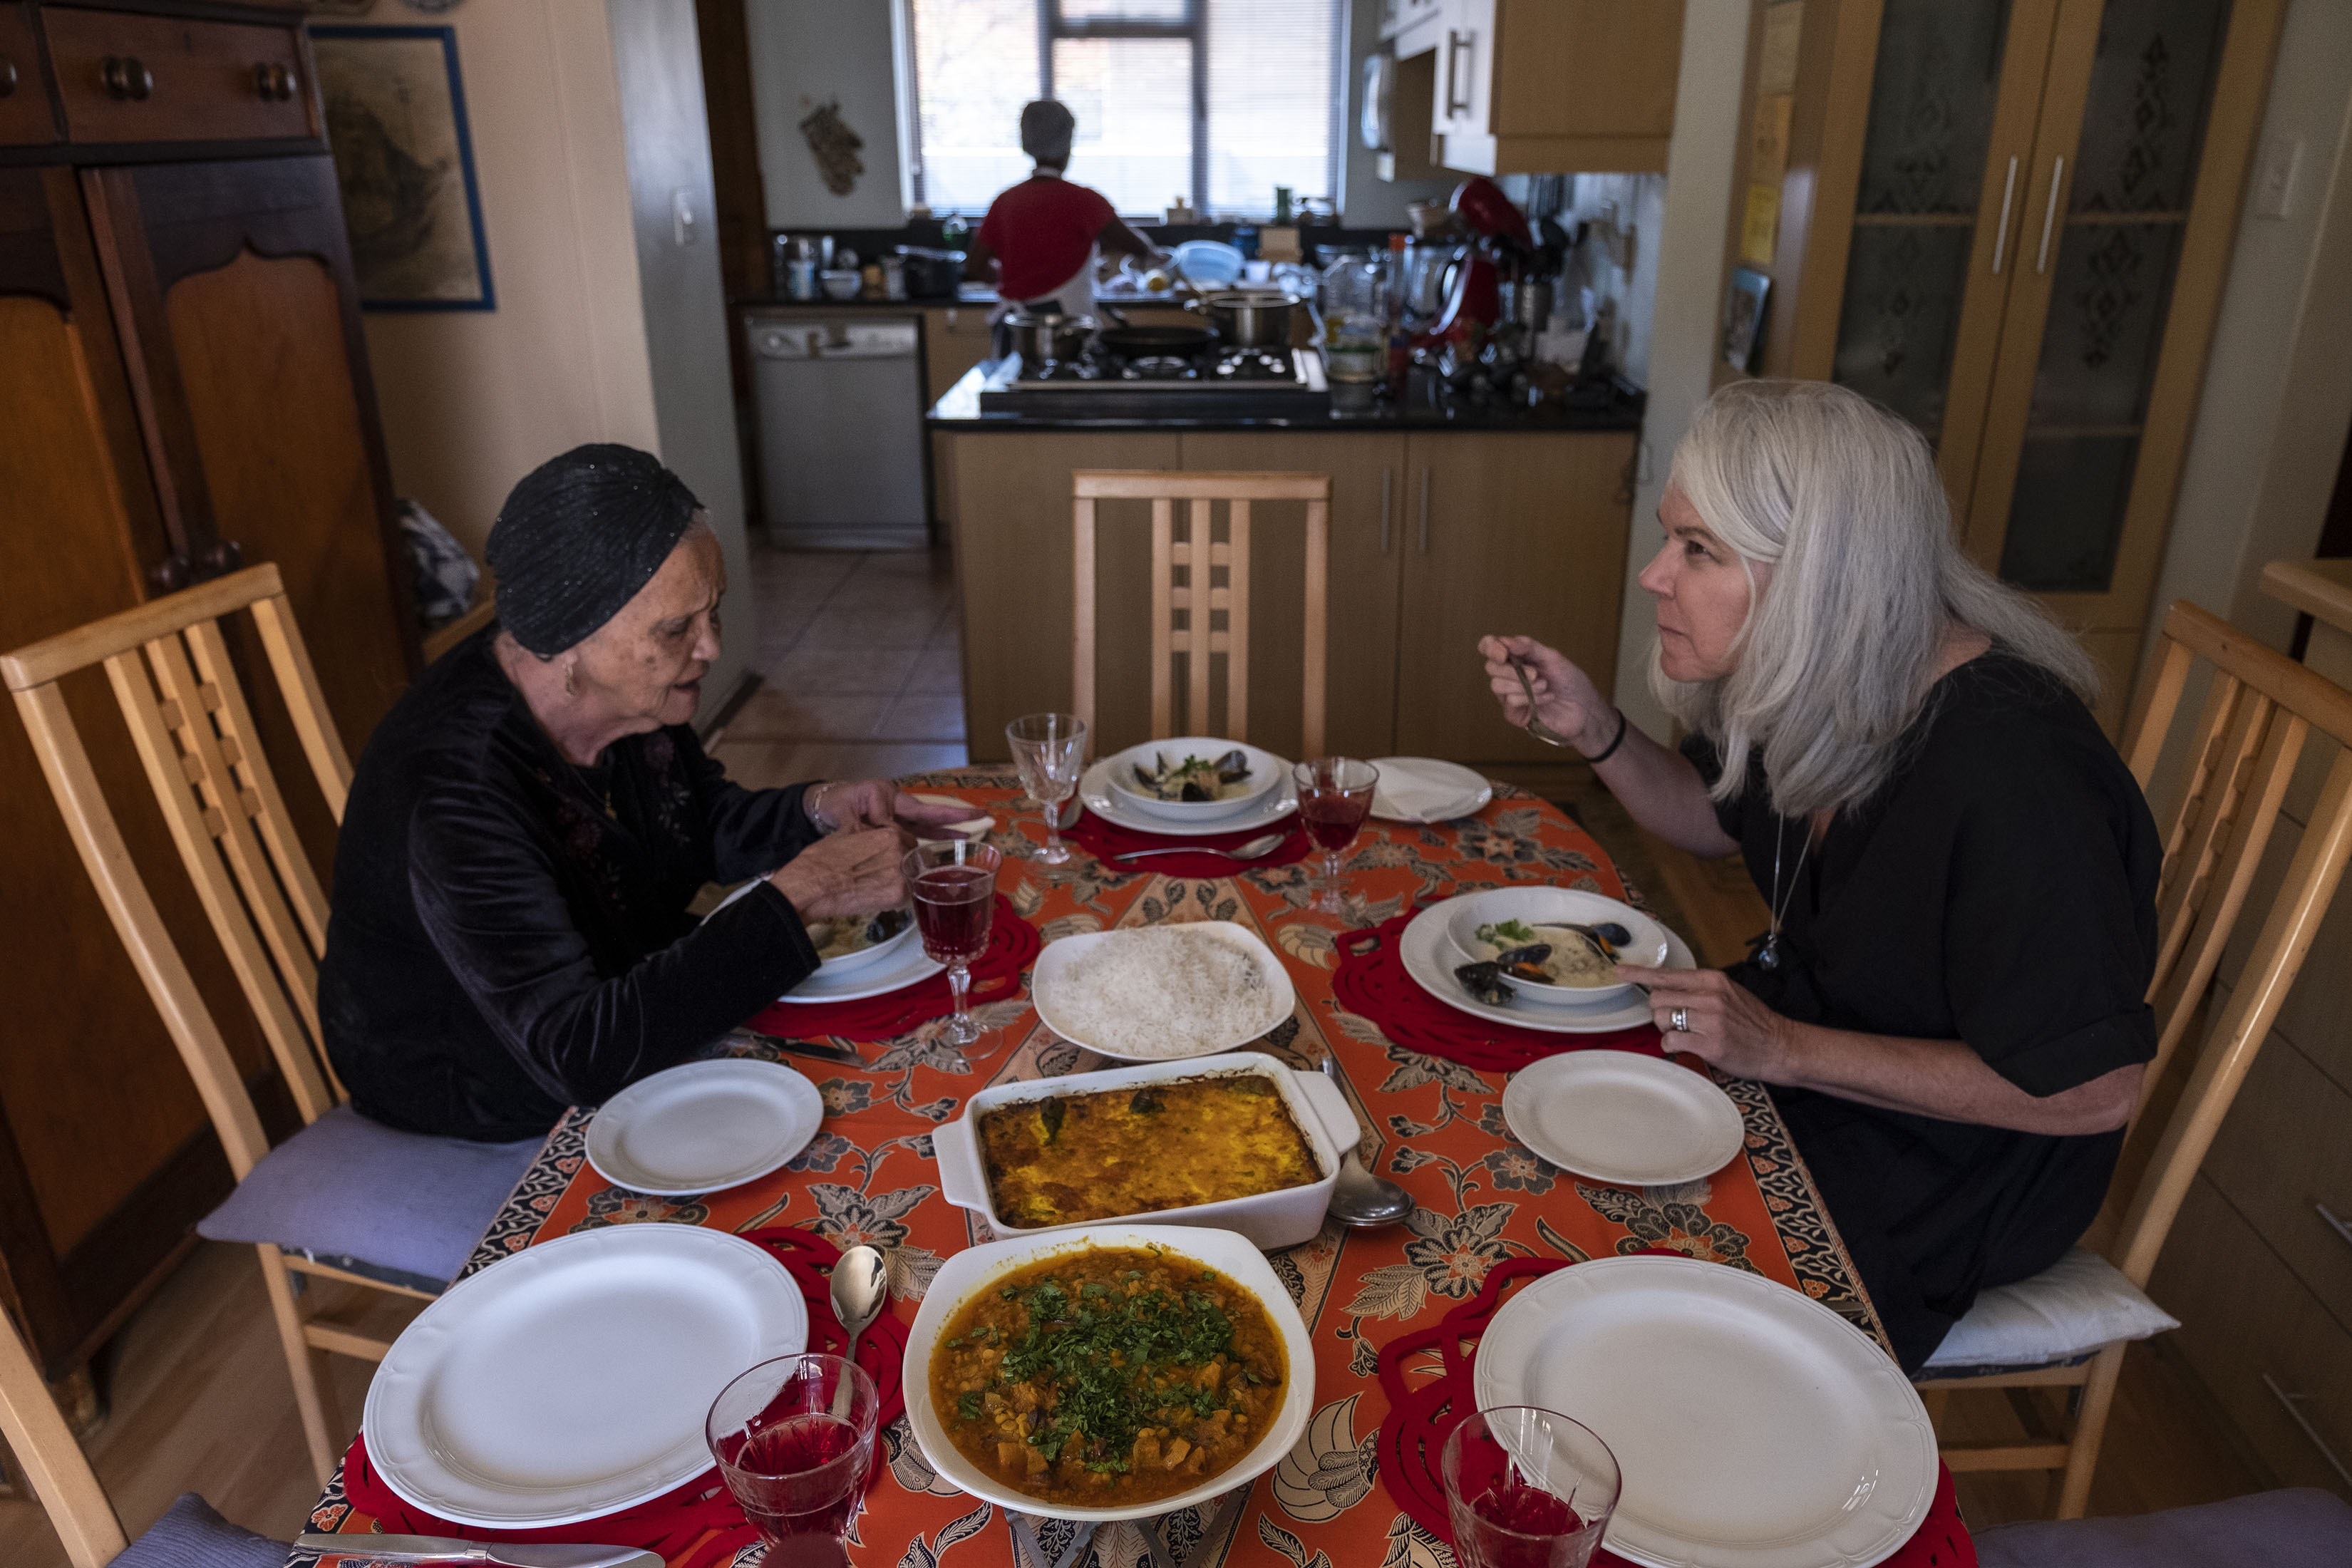 3 September 2019: Cass Abrahams (left) and her student Mary Kluck enjoying the meal they prepared during their lesson.